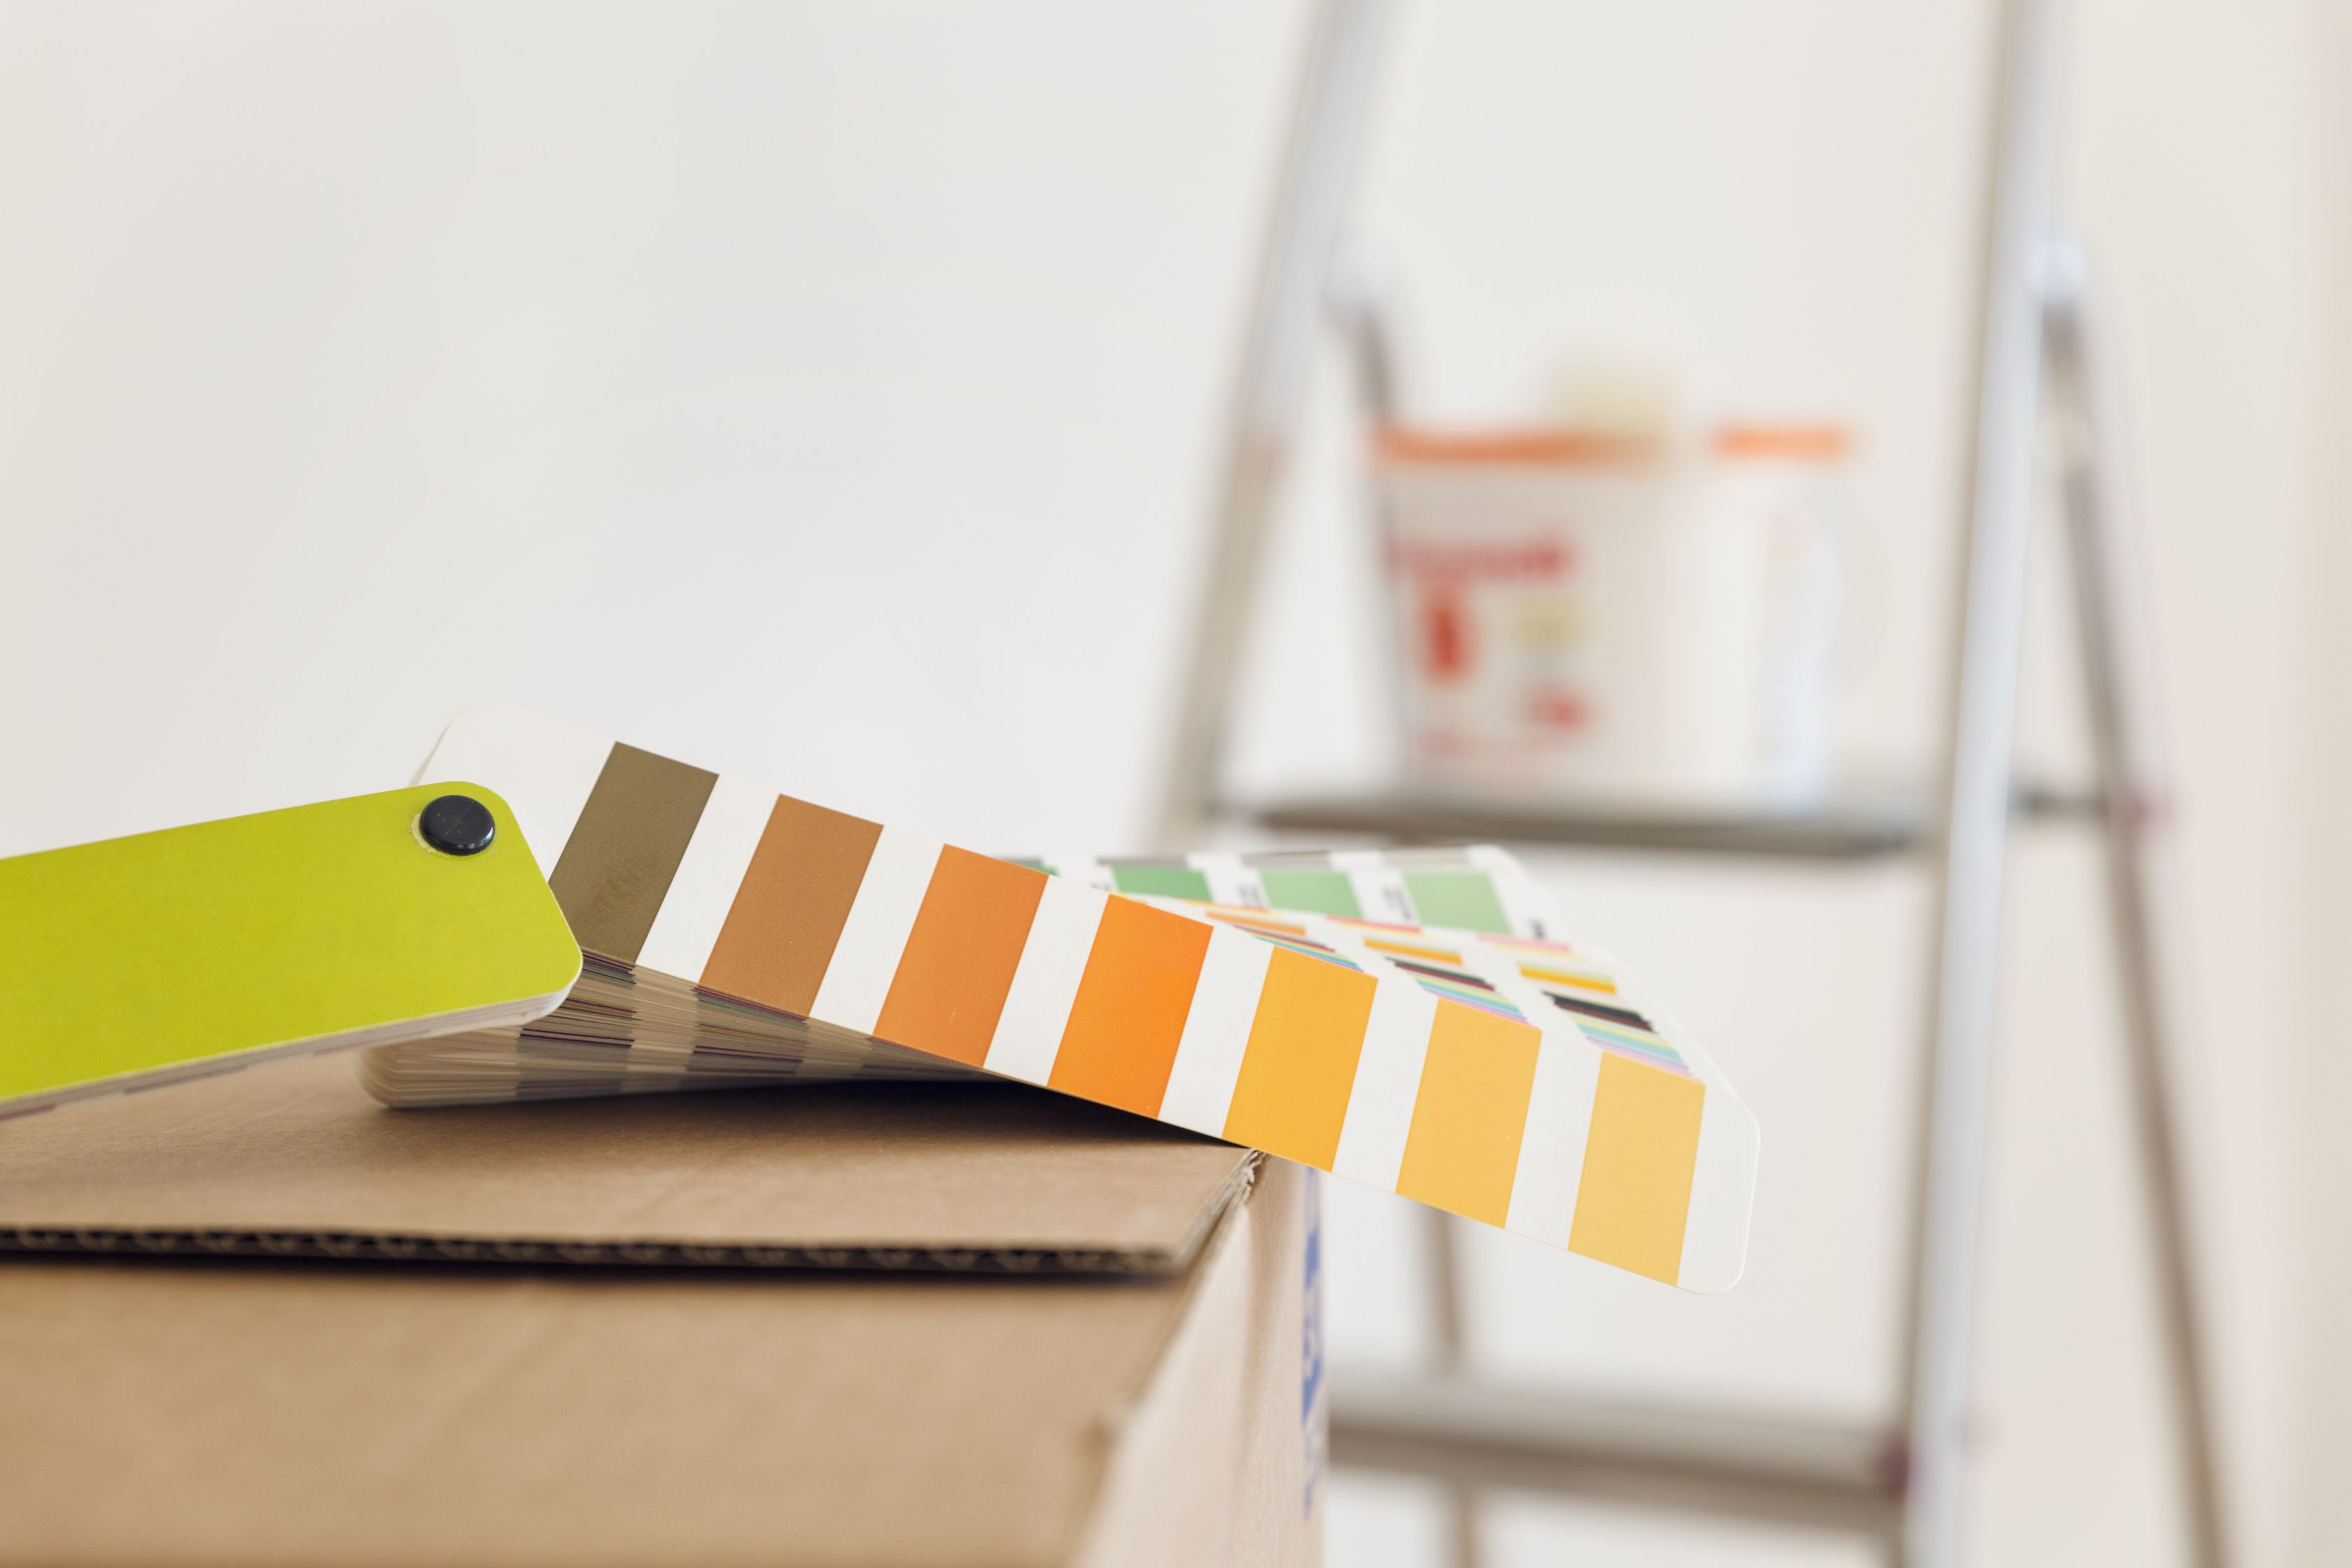 10 home improvement tasks that will take less than 34 hours to complete